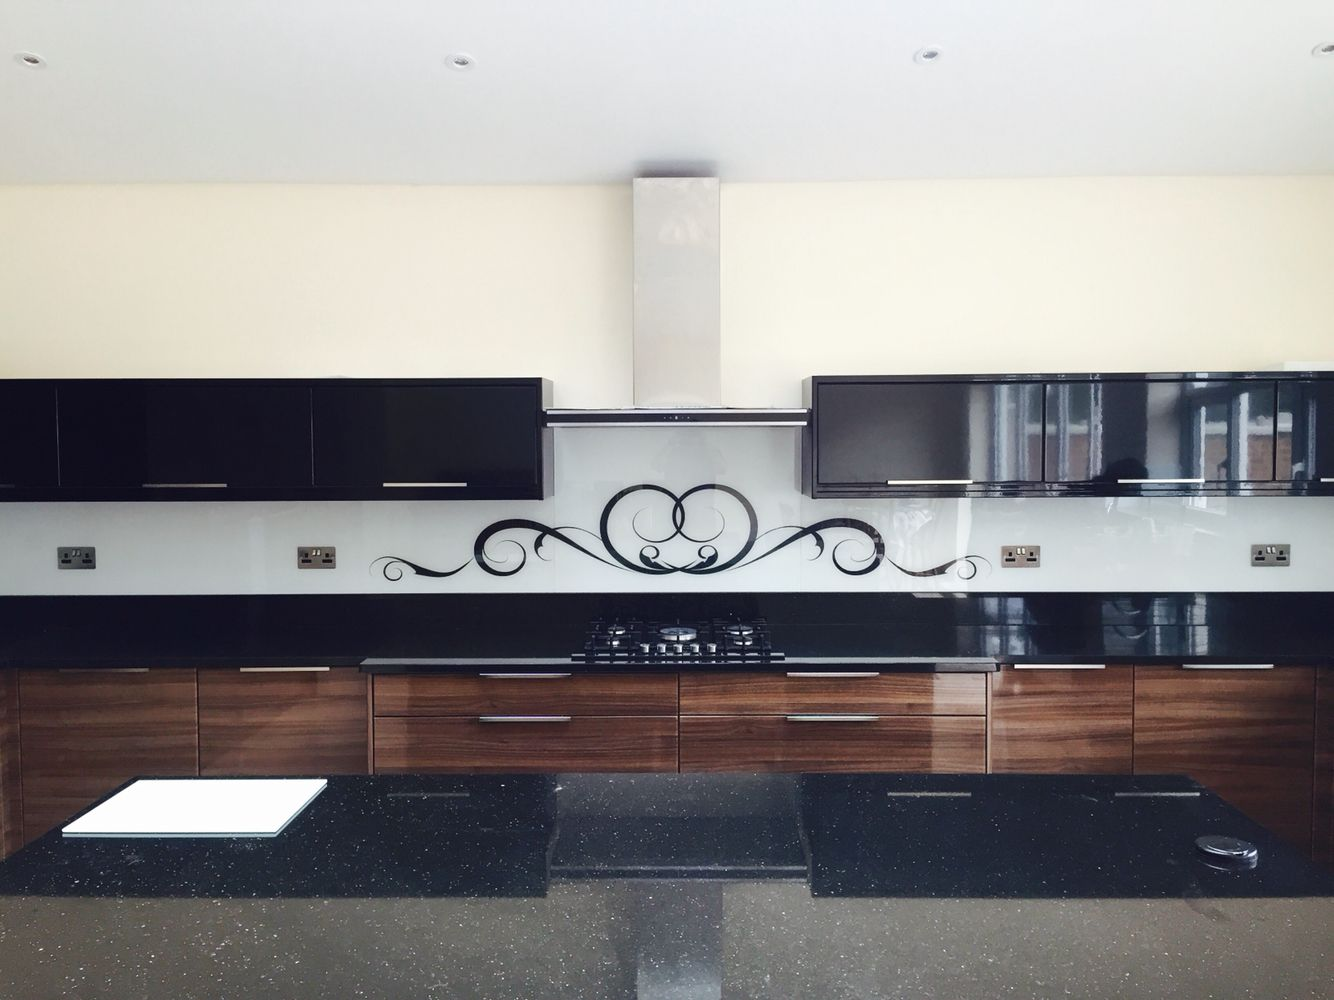 For Kitchen Splashbacks Swirls Glass Kitchen Splashbacks By Creoglass Design London Uk